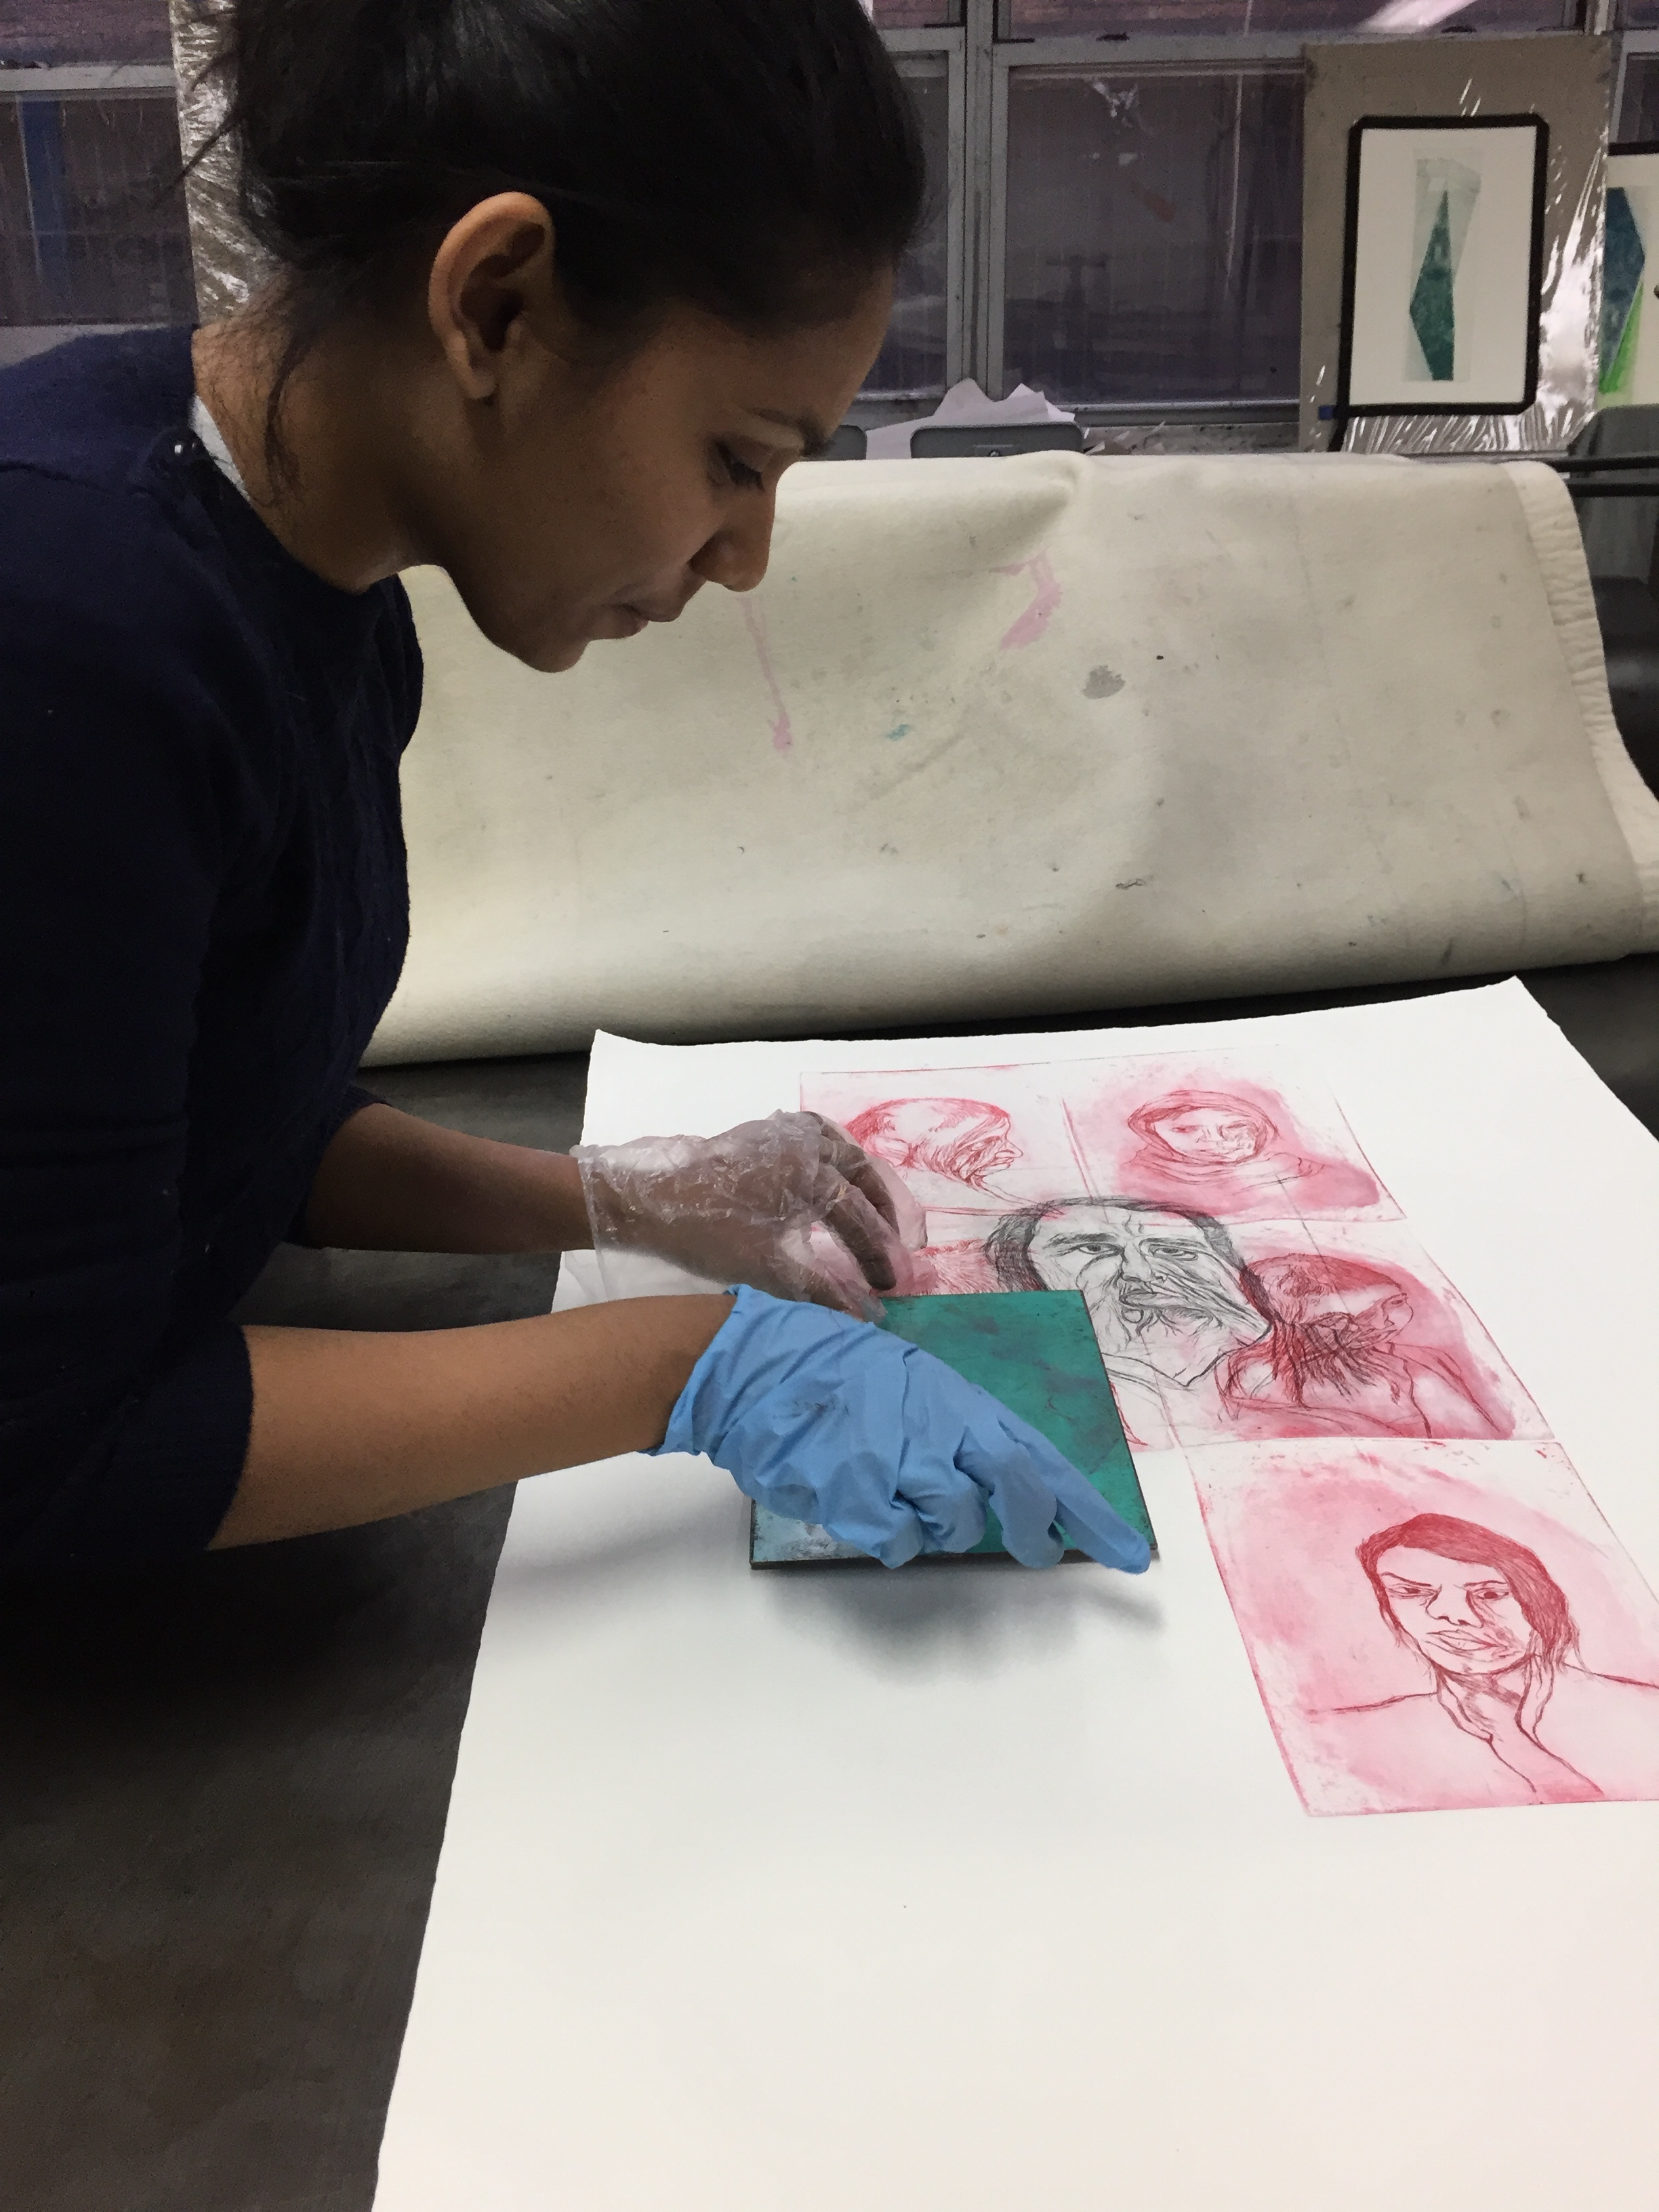 Shivangi Ladha printing at Robert Blackburn Printmaking Workshop during her IPCNY residency.